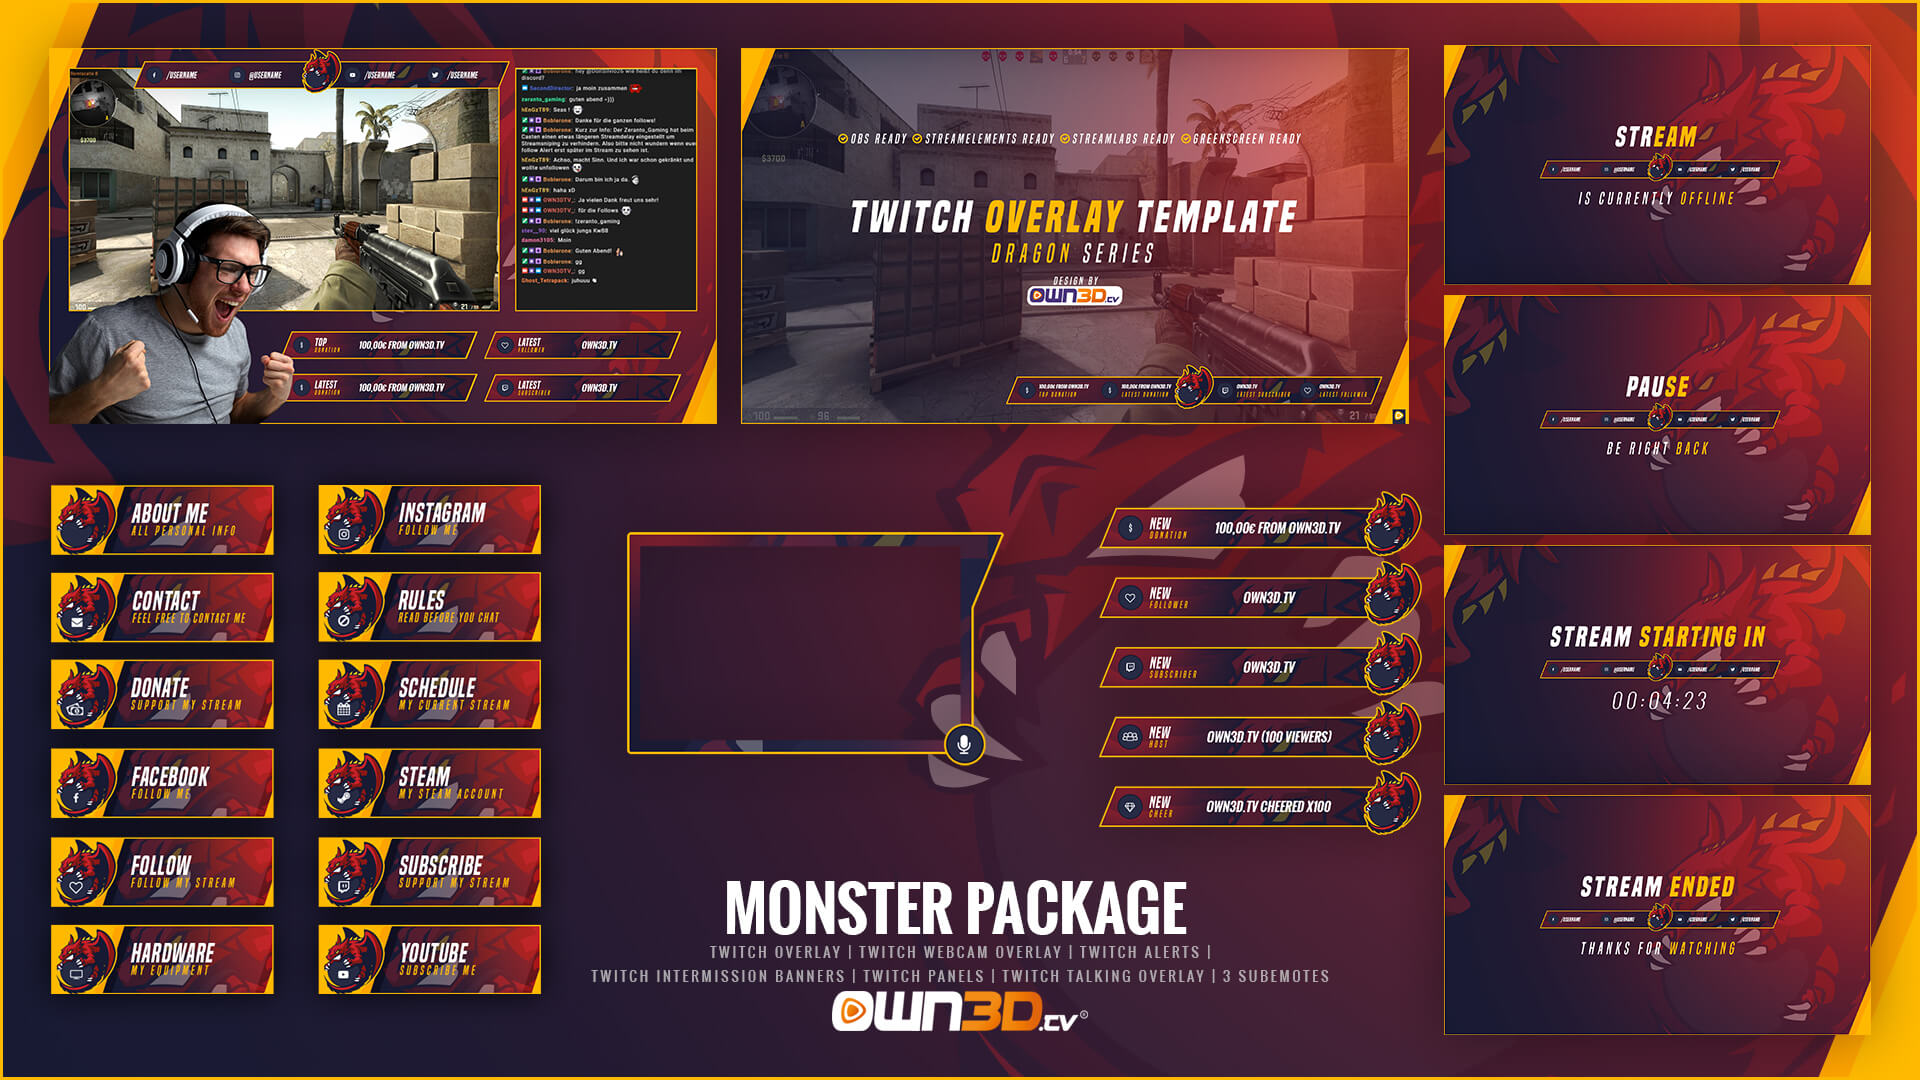 dragon-series-twitch-overlay-package-03-monster.jpg